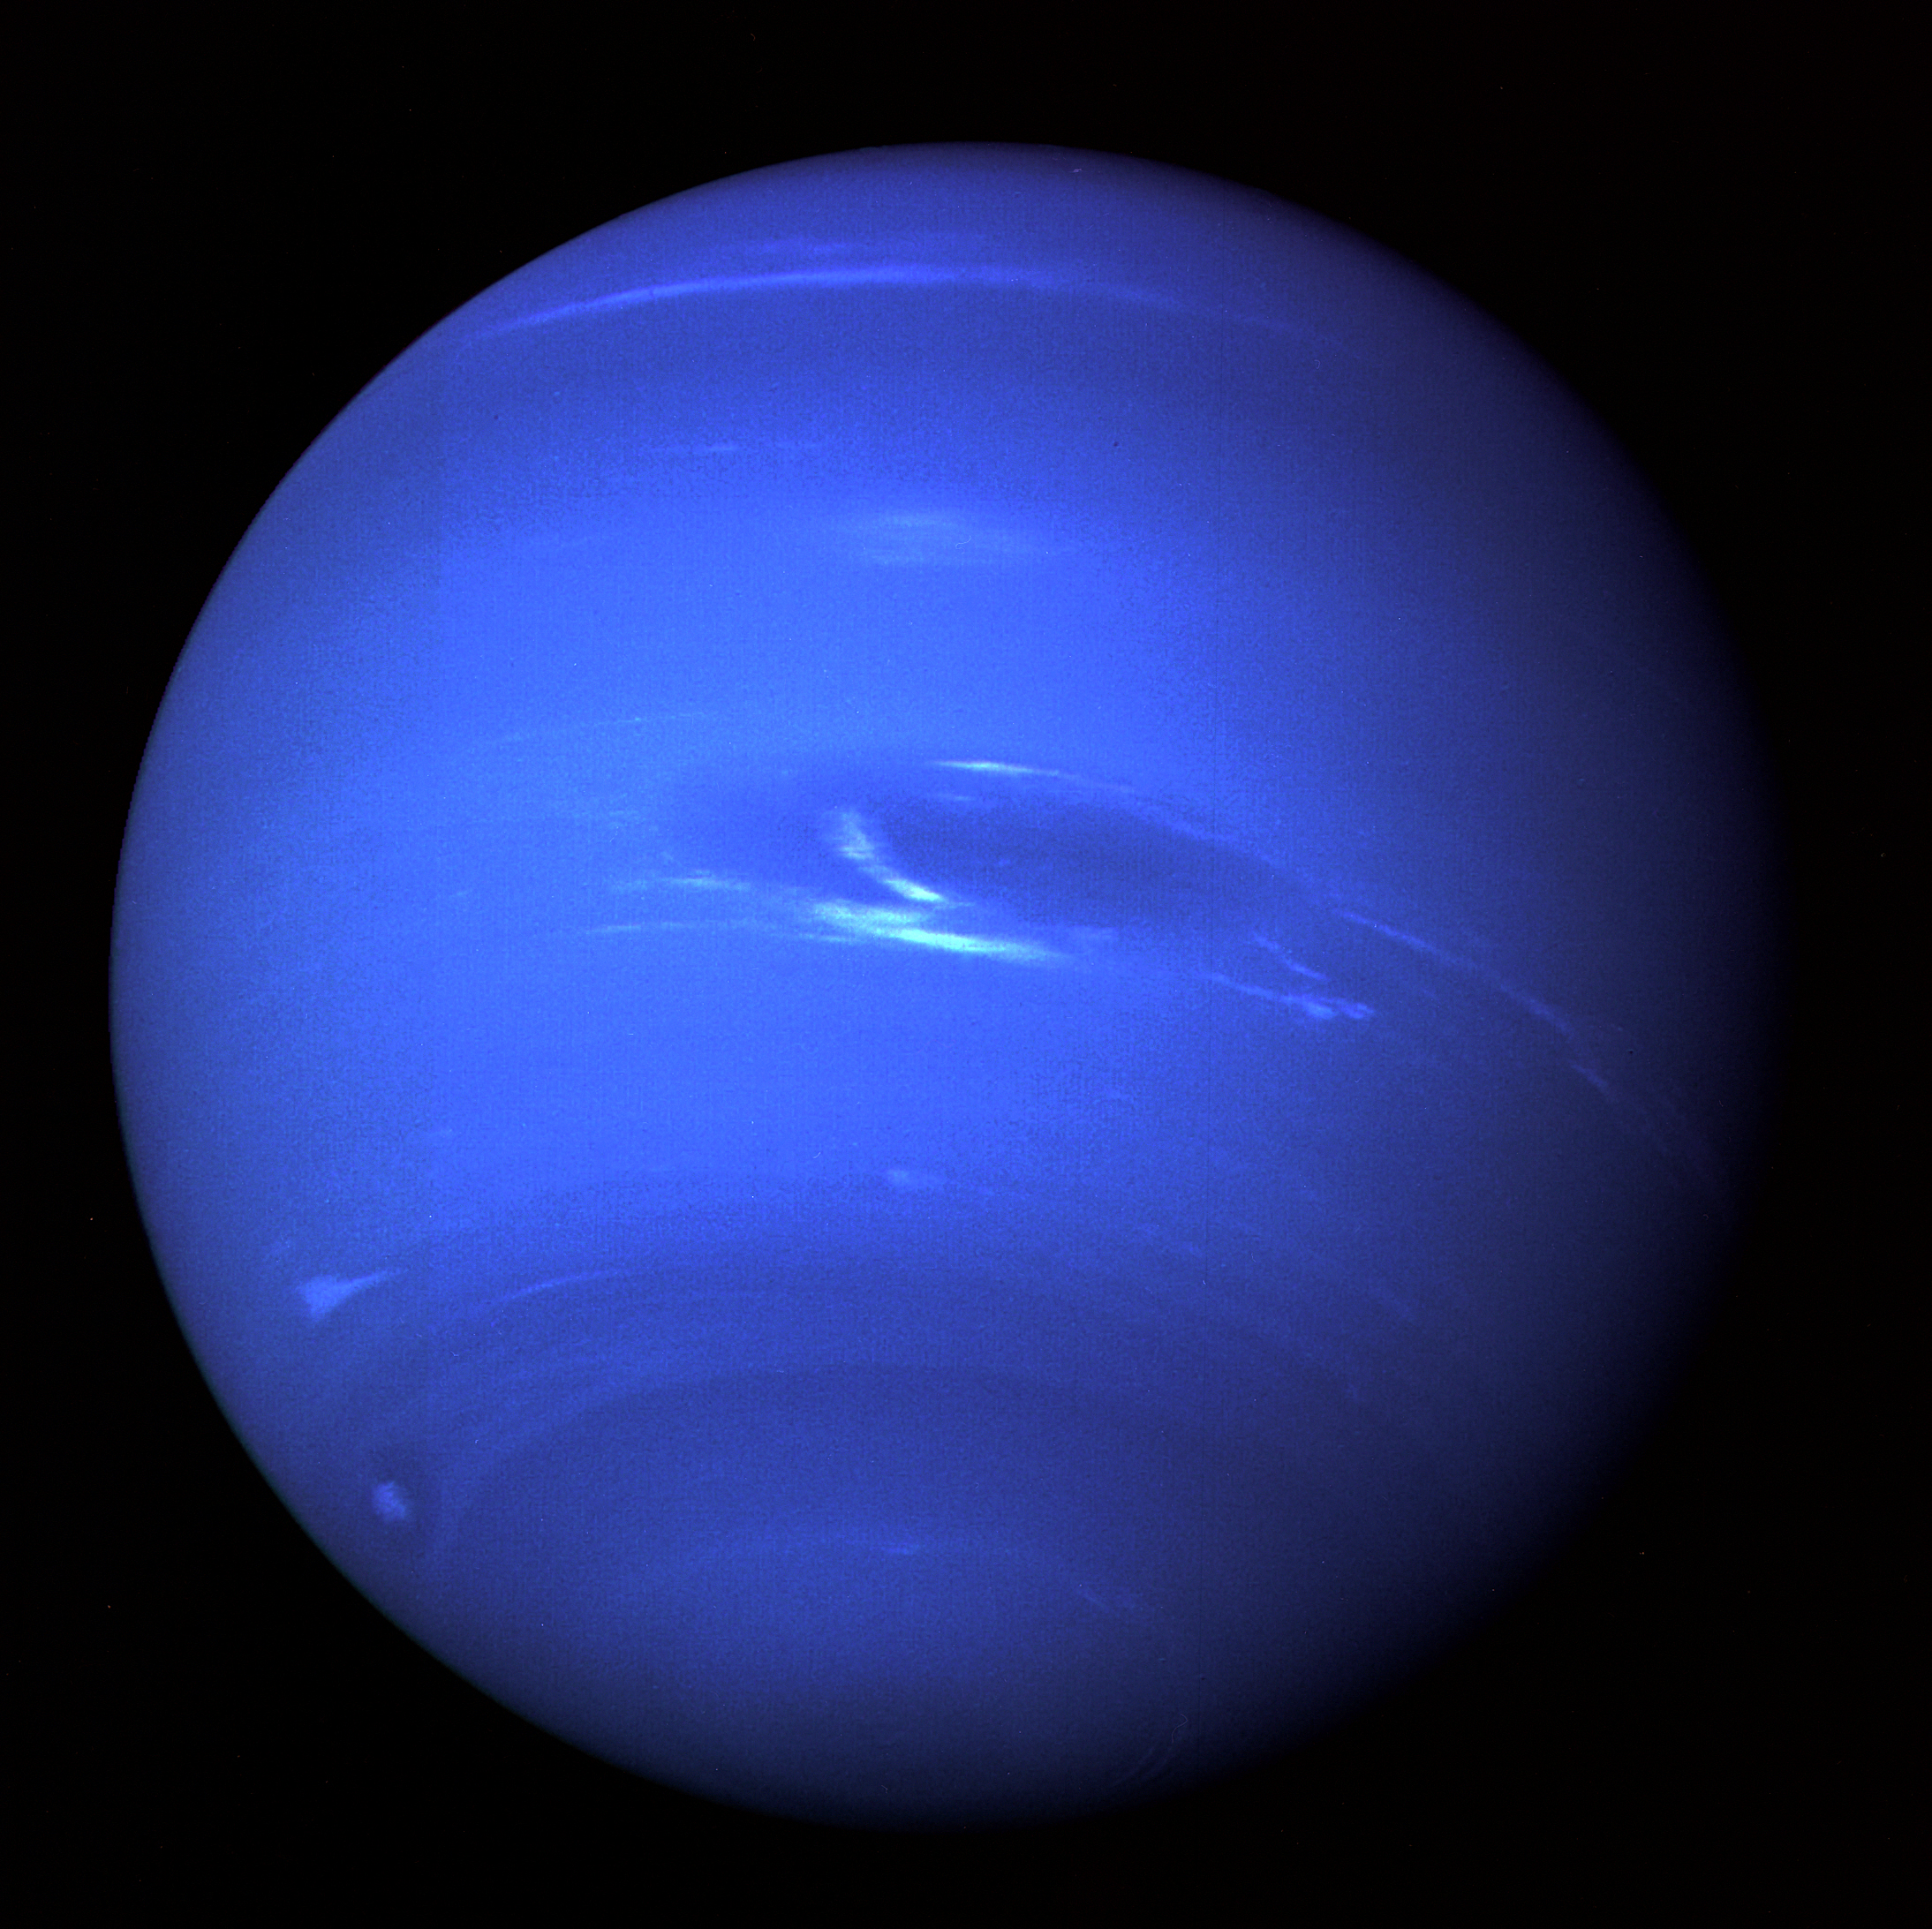 25 Years Ago, Voyager 2 Captures Images of Neptune | NASA